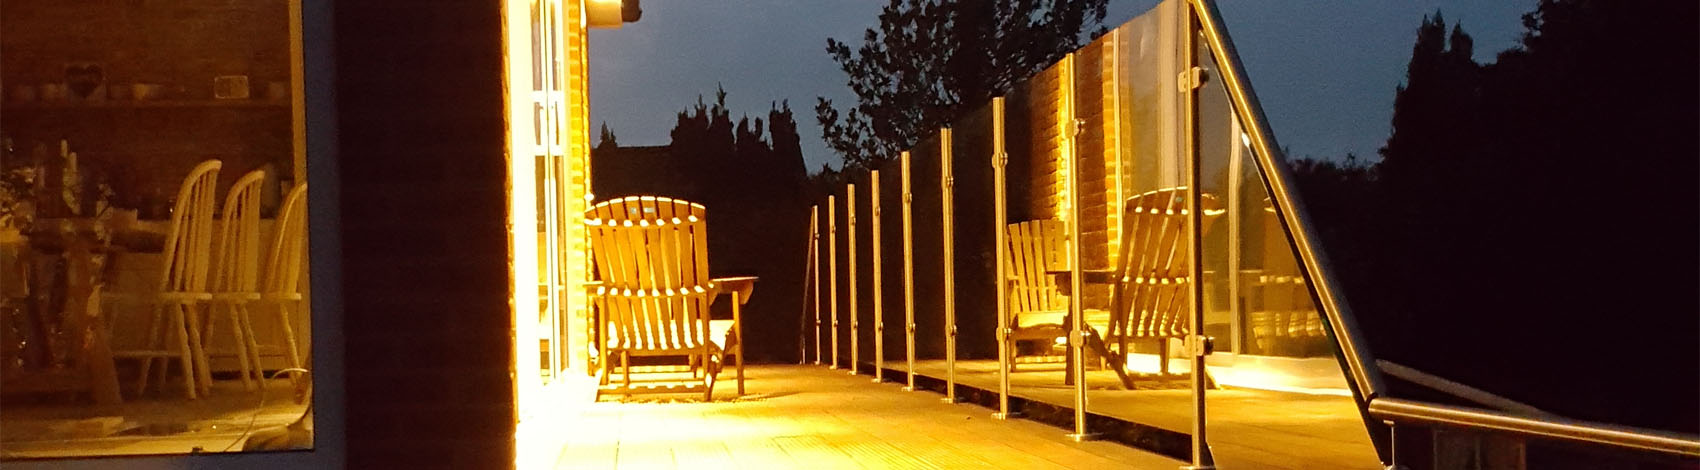 Glass balustrade installed on decking and shown at night time